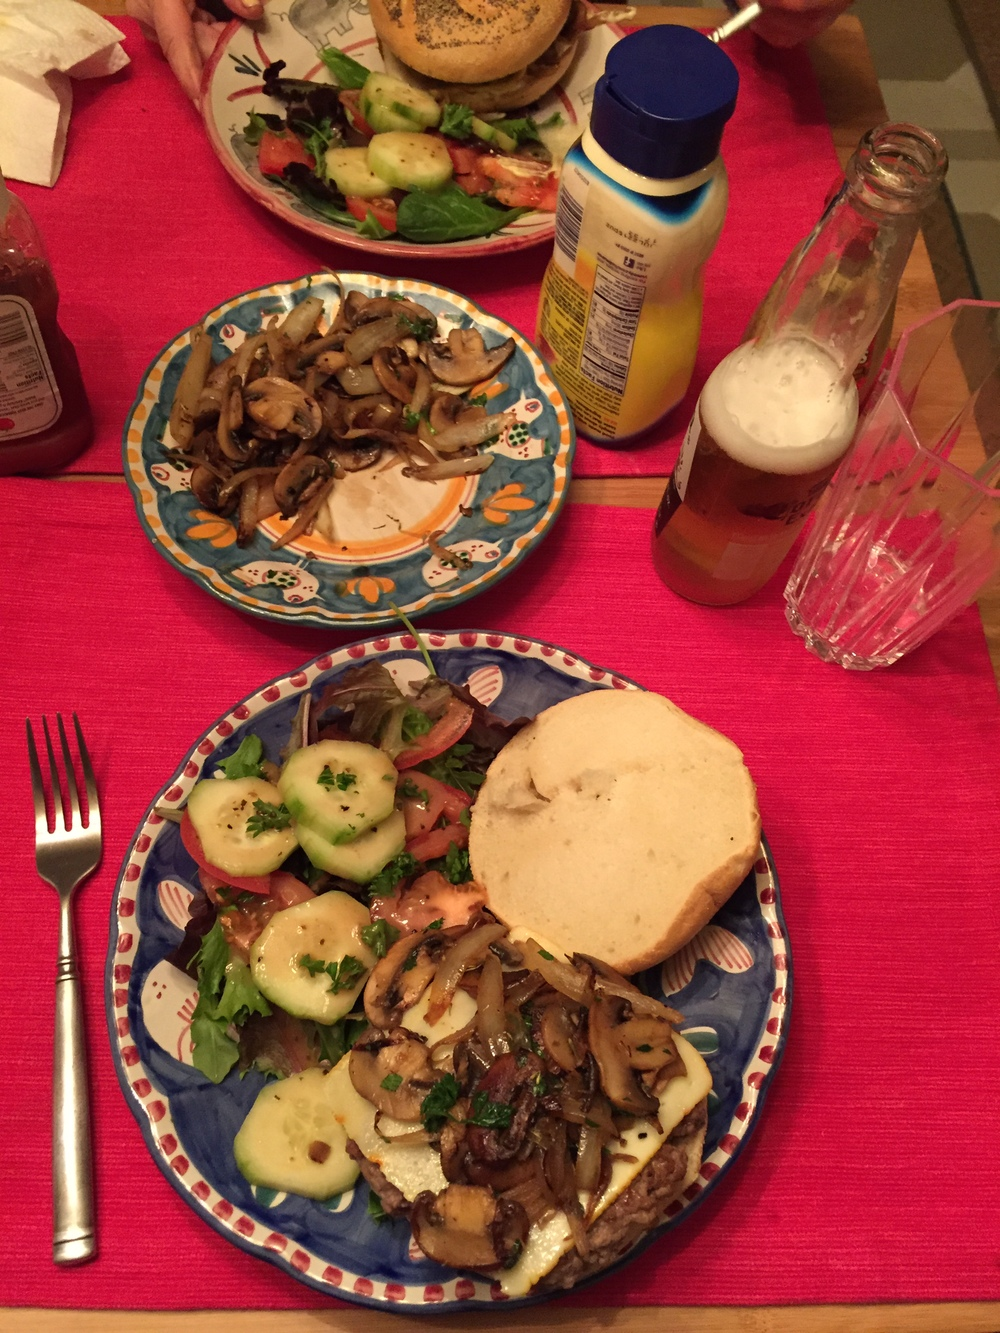 Burgers with Onions and Mushrooms